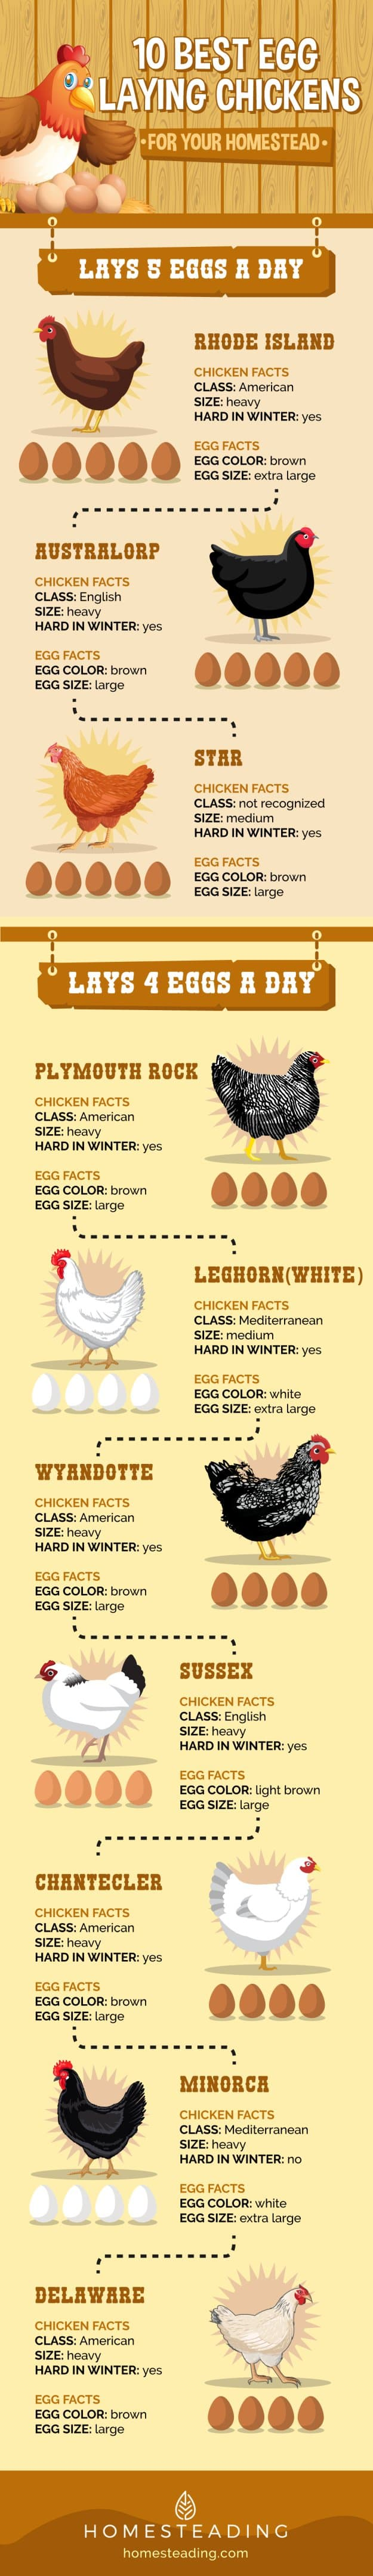 The Best Egg Laying Ens For Your